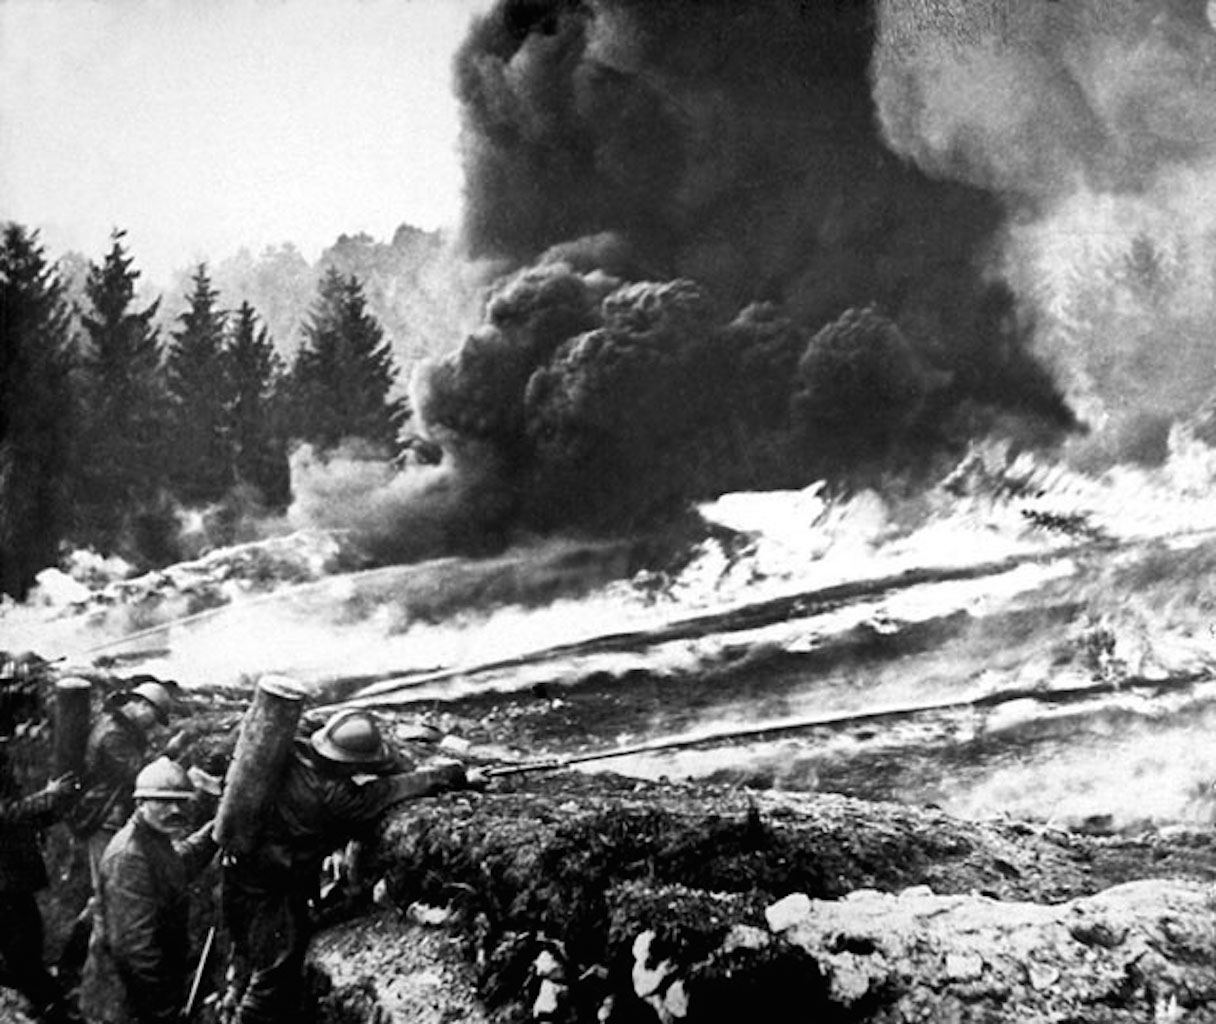 Flamethrowers being used from trenches during World War I